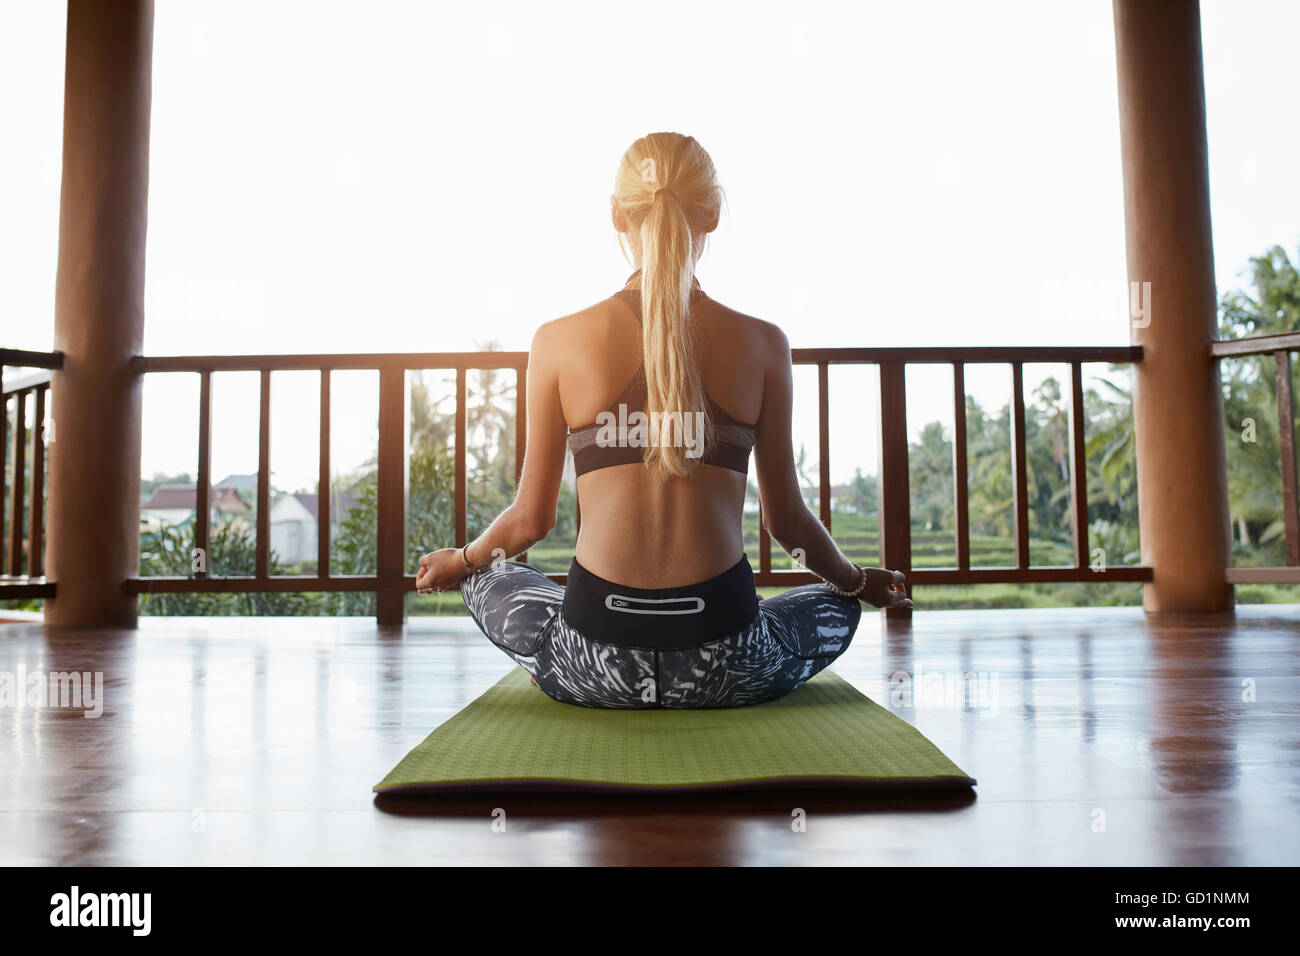 Rear view shot of young woman practicing yoga while sitting in lotus position on exercise mat. Sporty woman padmasana - Stock Image